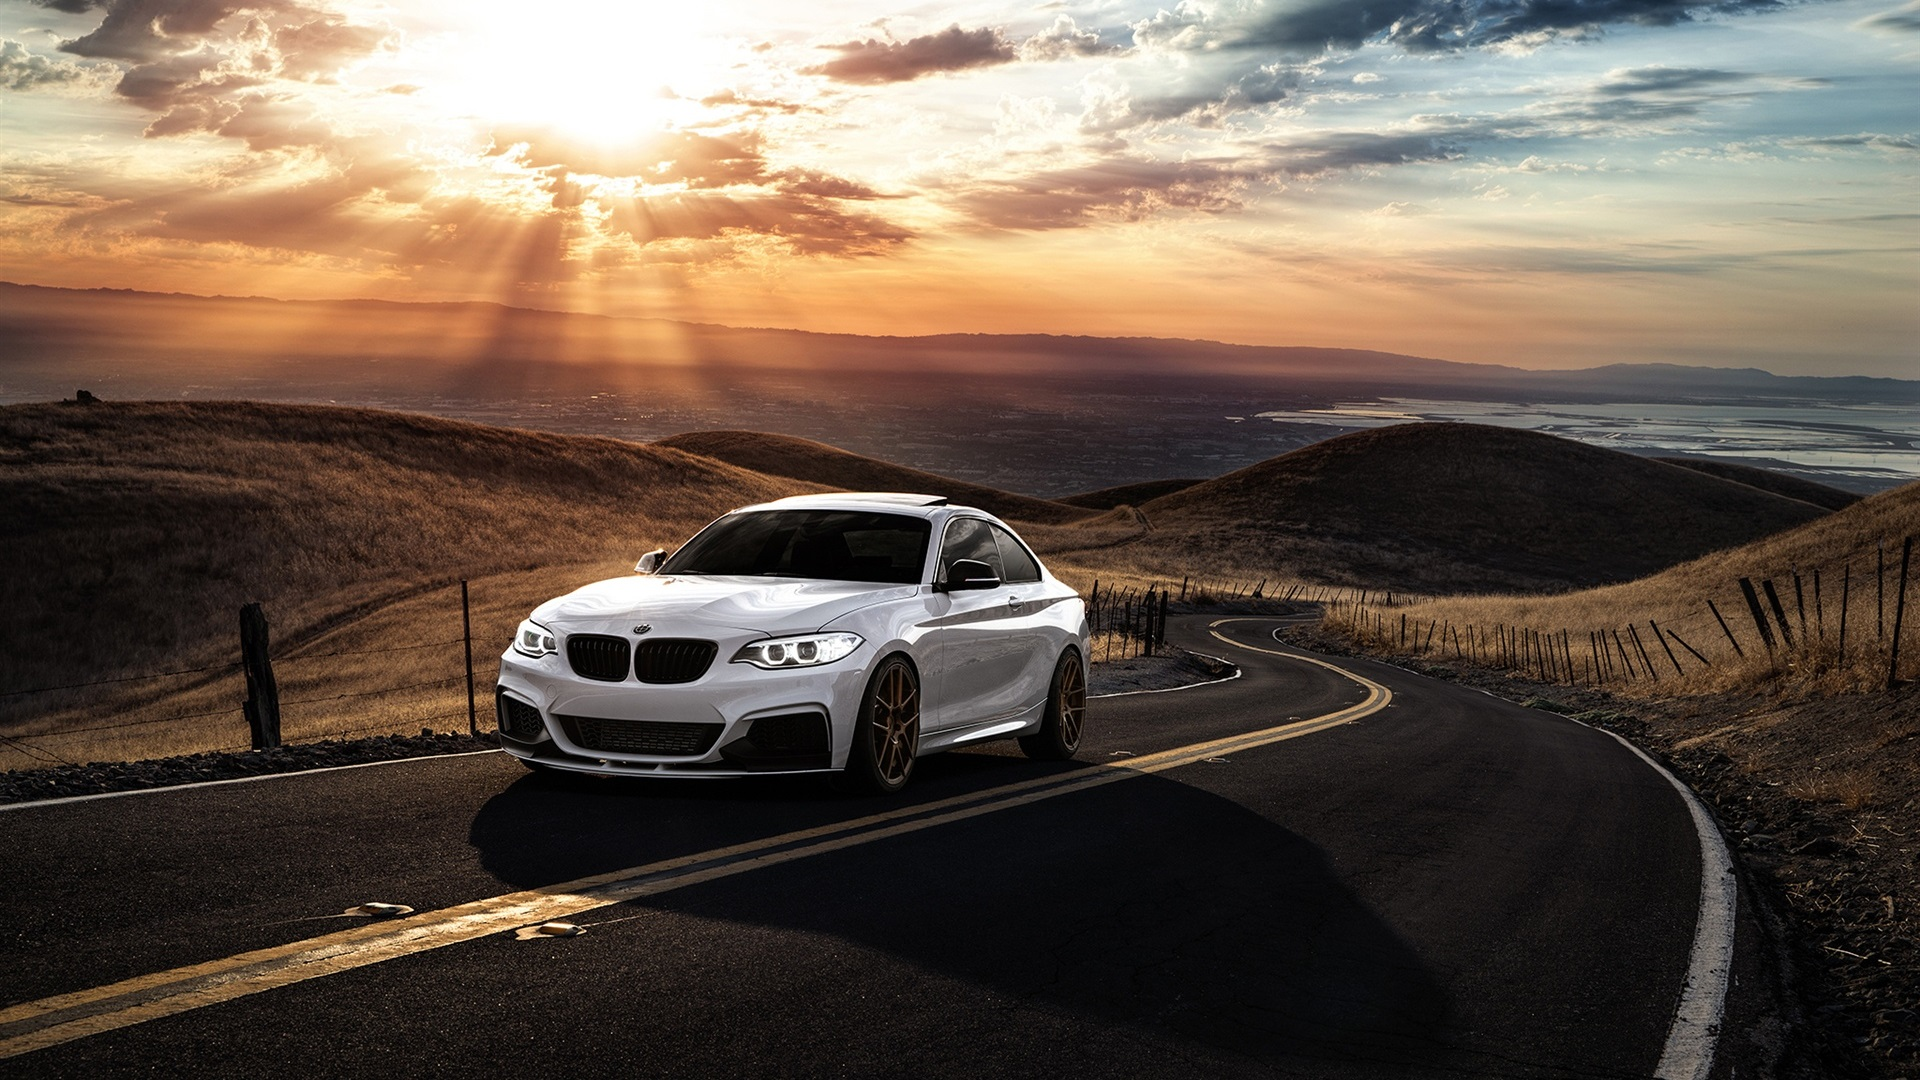 Audi A4 Iphone Wallpaper Wallpaper Bmw M235i White Car Sunset Clouds Road